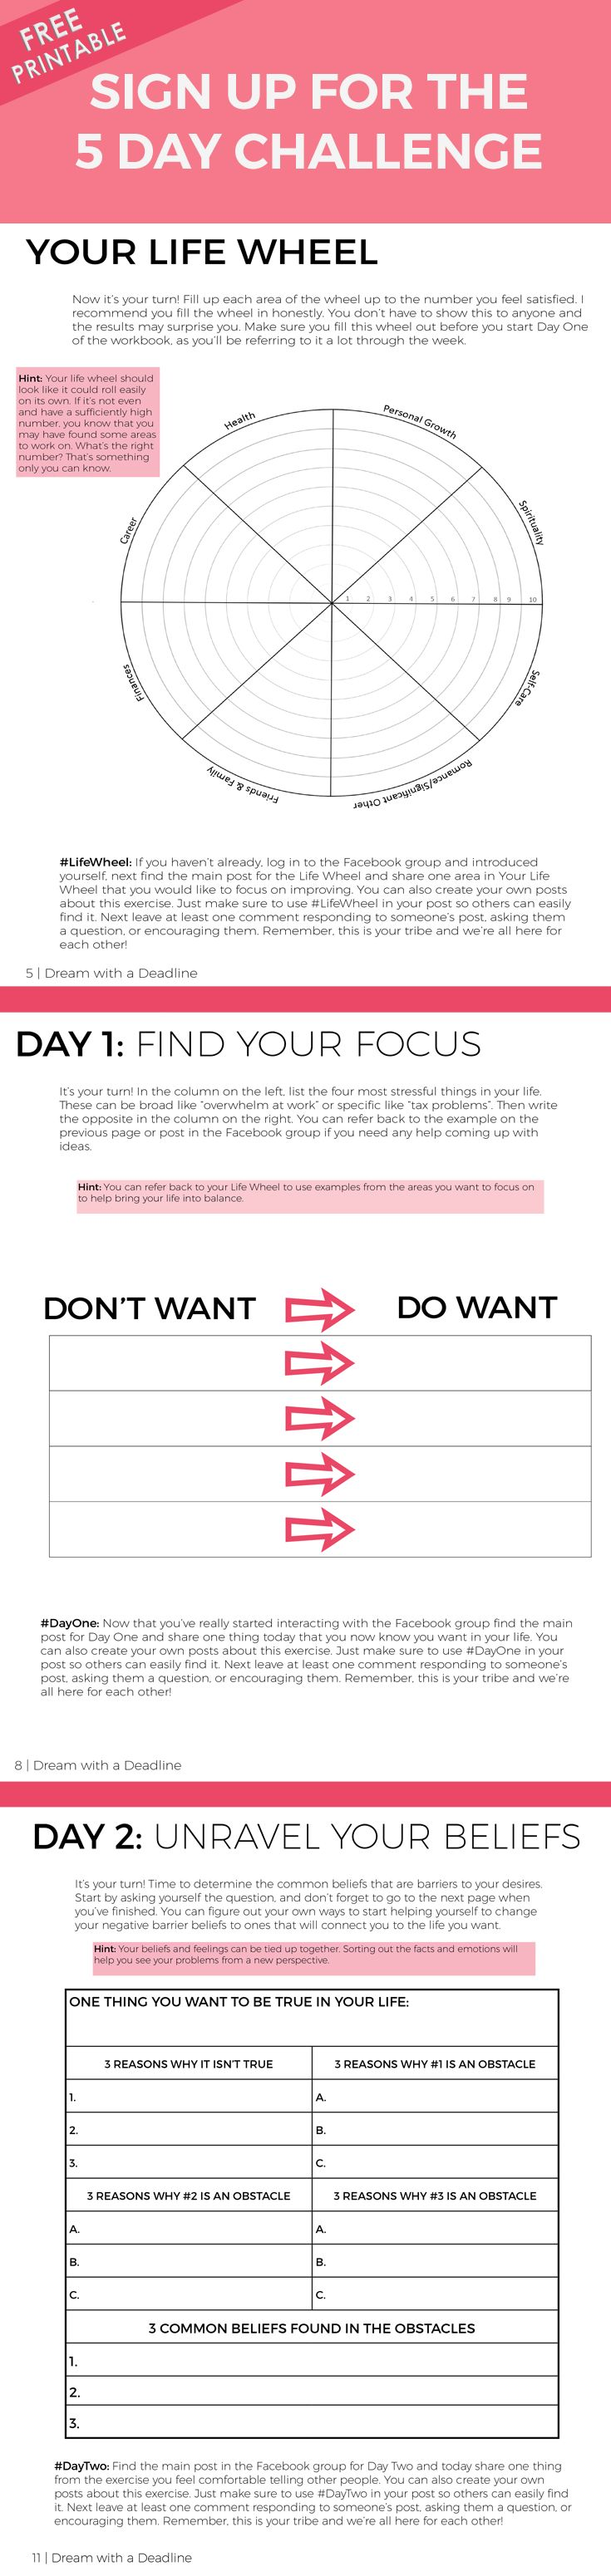 [FREE PRINTABLE] Dream with a Deadline - GOAL PLANNING Workbook - Mary Shores